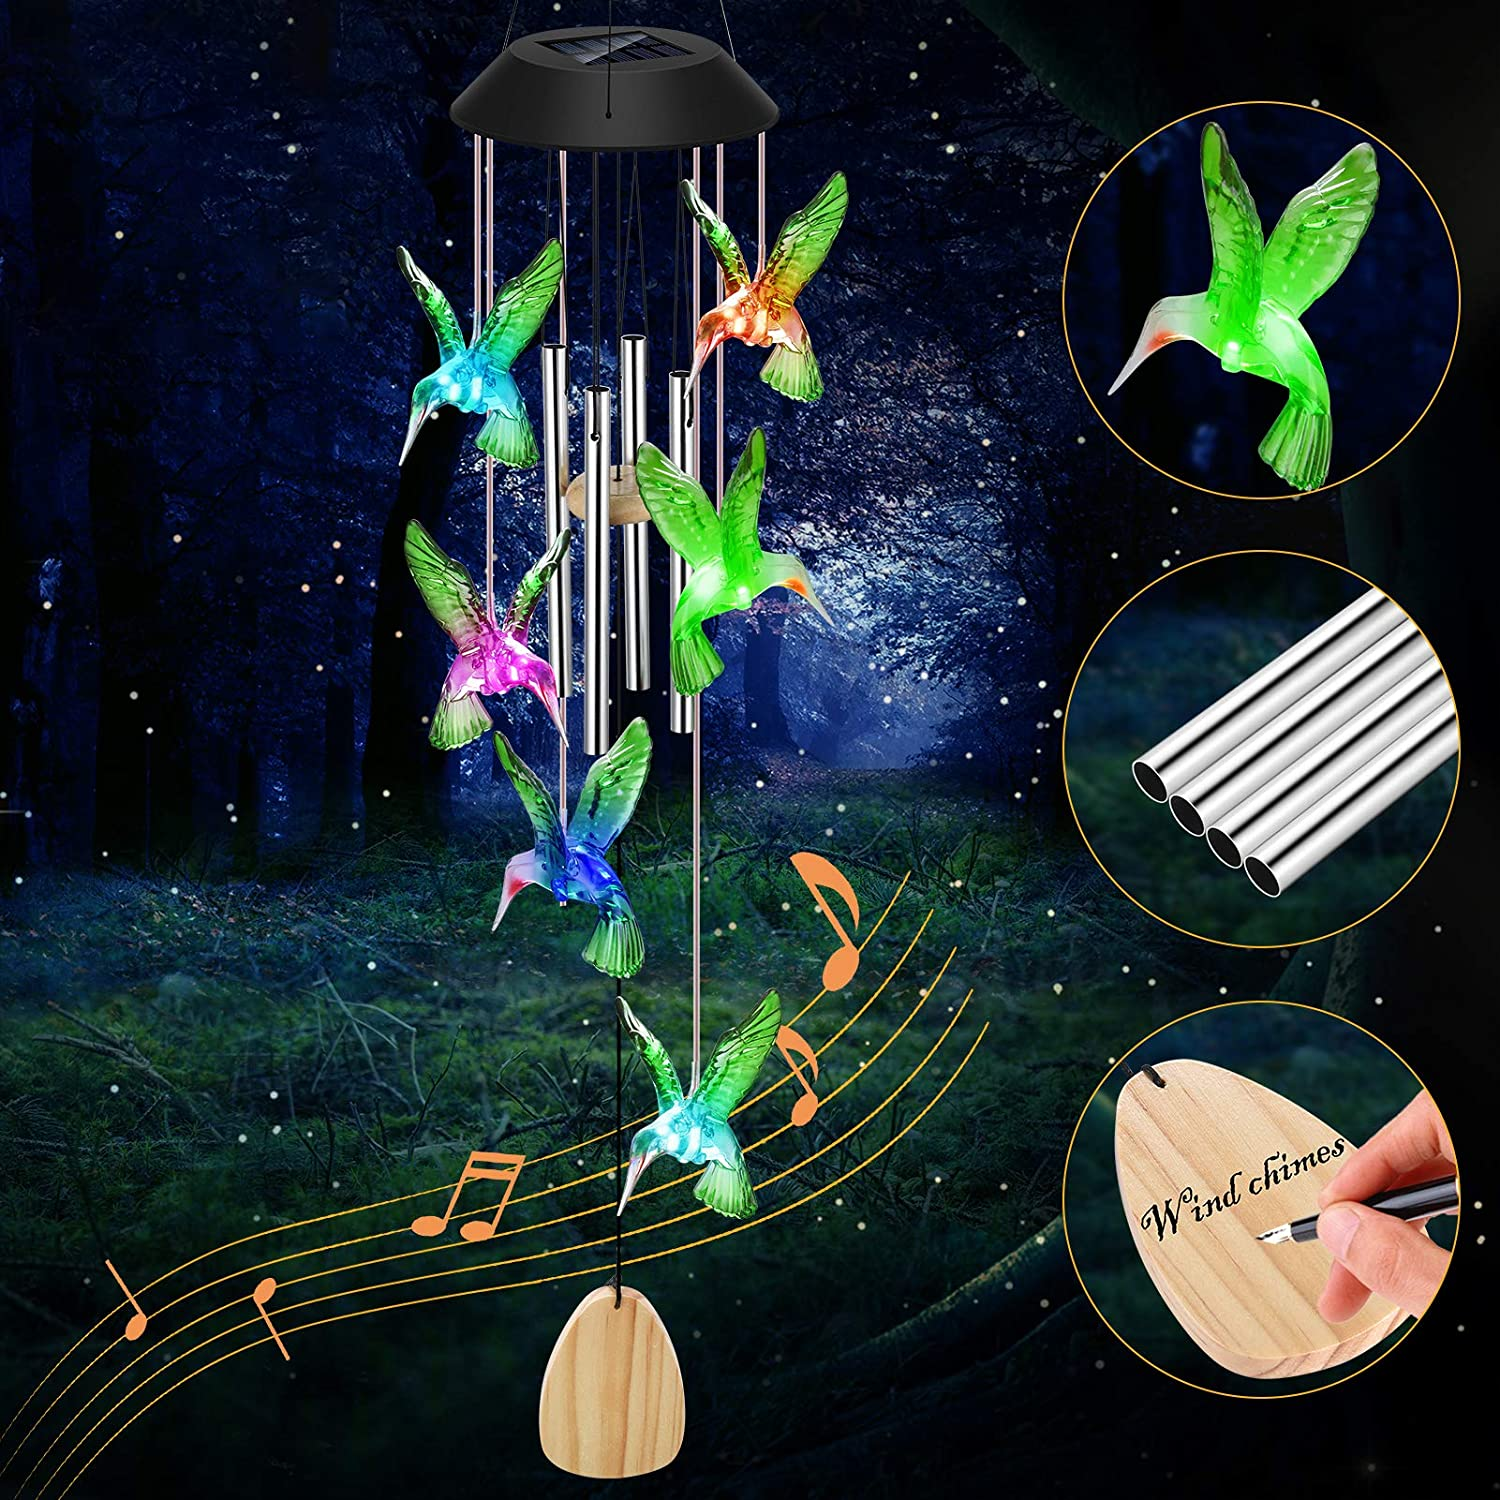 Solar Wind Chimes Changing Colors, CrazyFire Waterproof Solar Powered Hummingbird Wind Chimes for Outside with 4 Tubes, LED Solar Hummingbird Lights, Housewarming Gift for Patio Yard Home Garden Decor